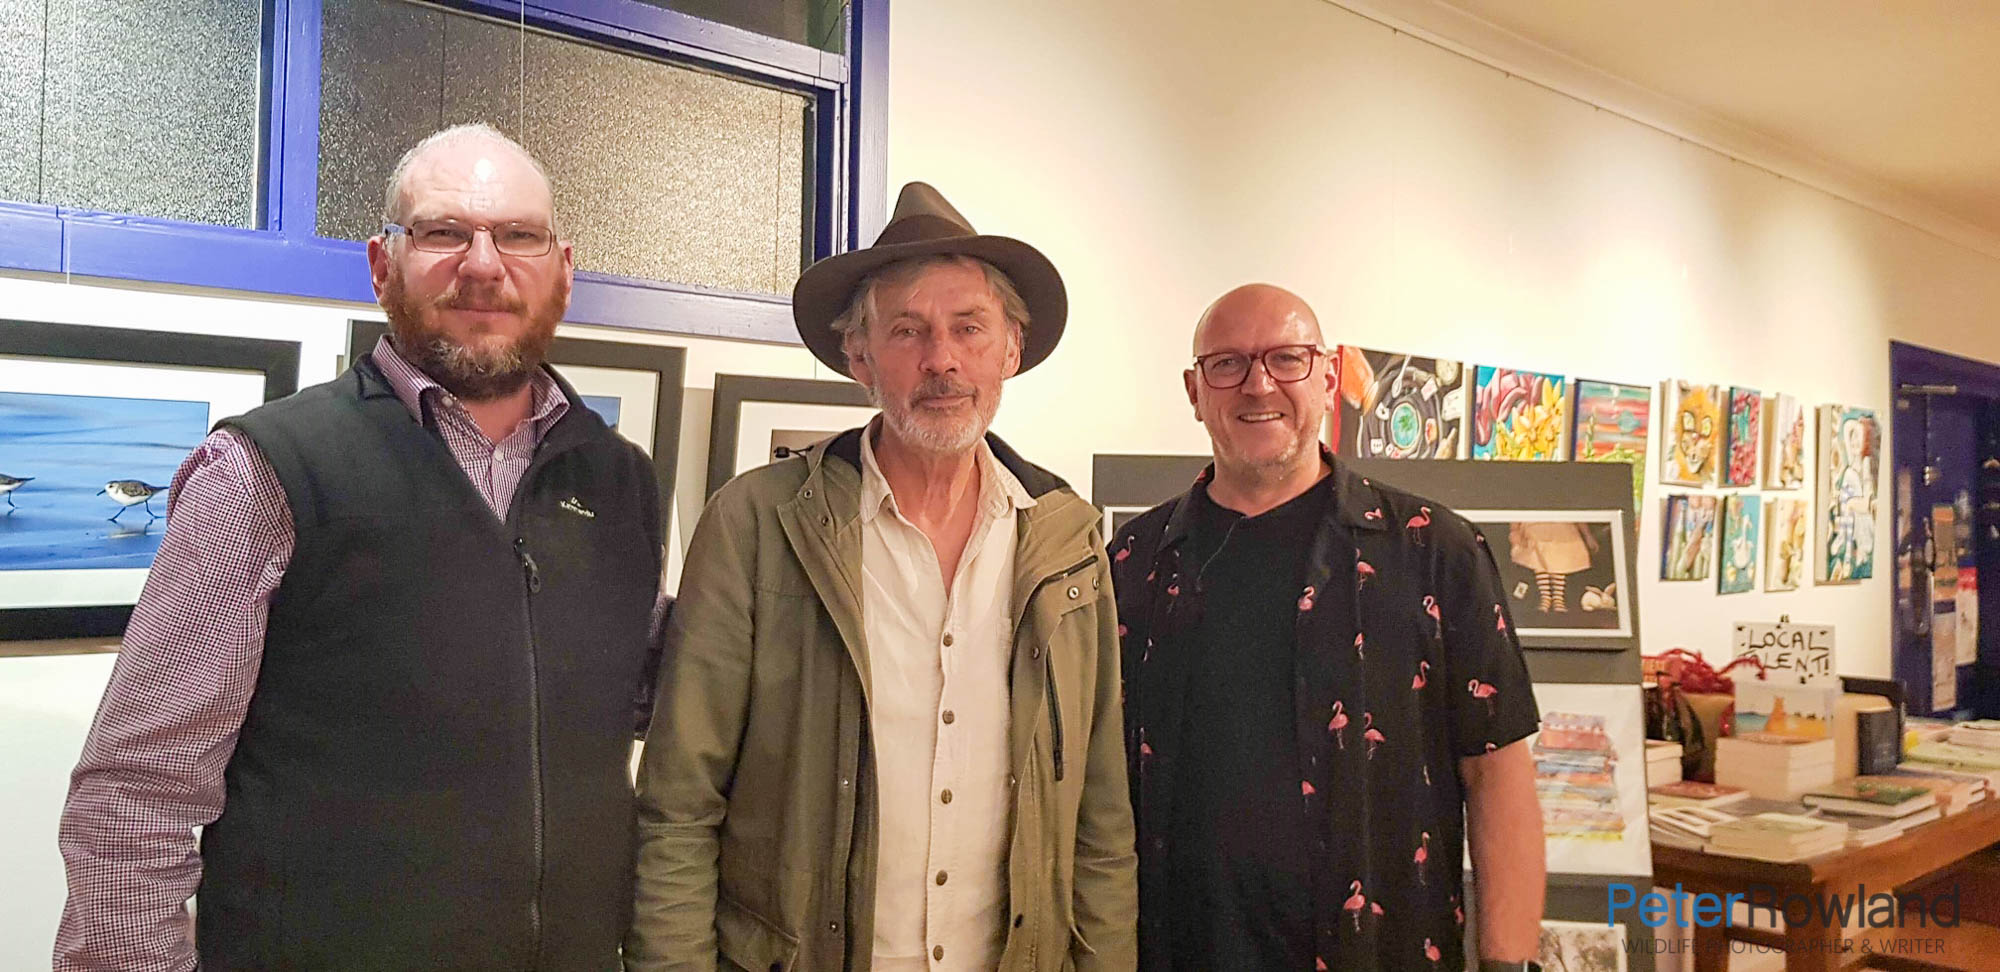 Chris Farrell, Shane Howard and Peter Rowland at a book launch